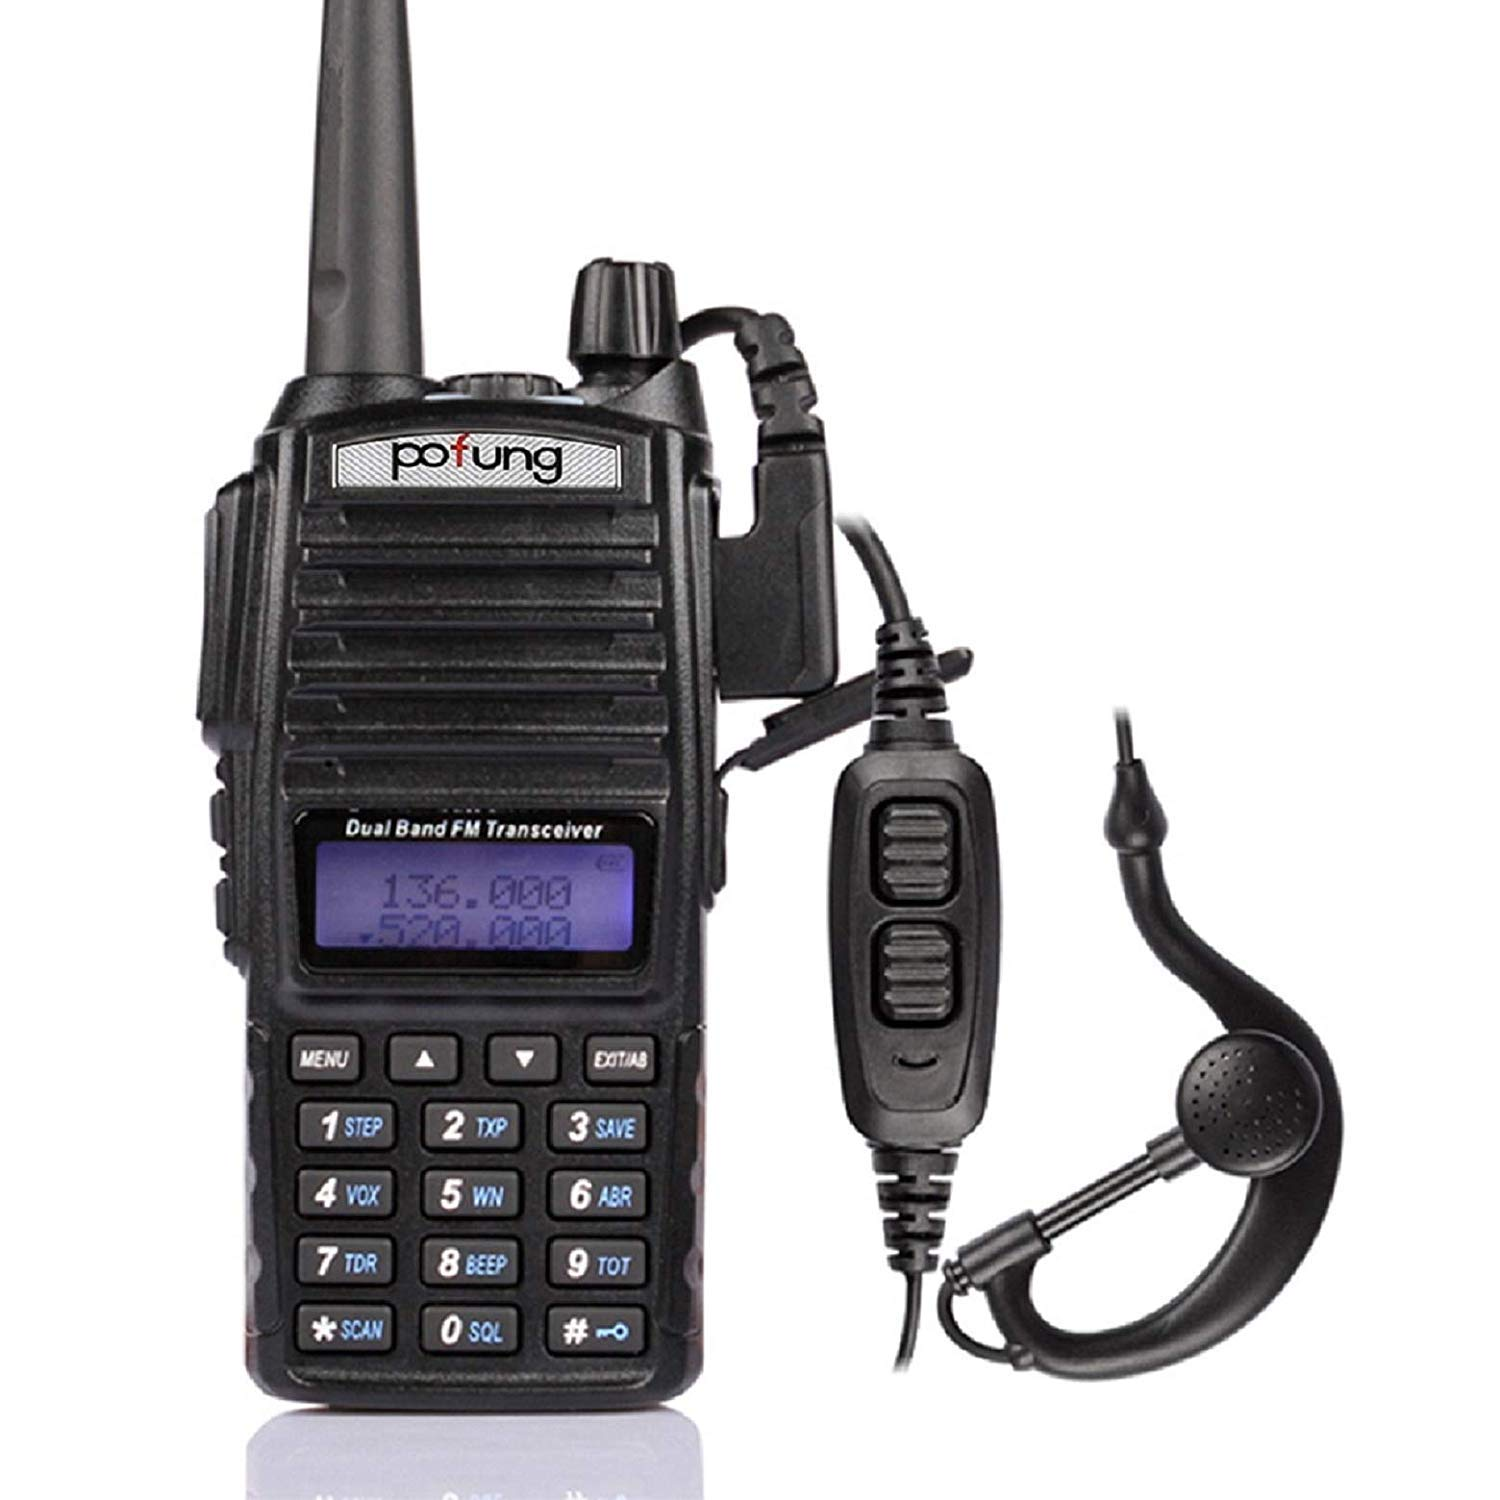 Pofung UV-82 VHF UHF FM Transceiver Dual Band Two Way Radio by BAOFENG